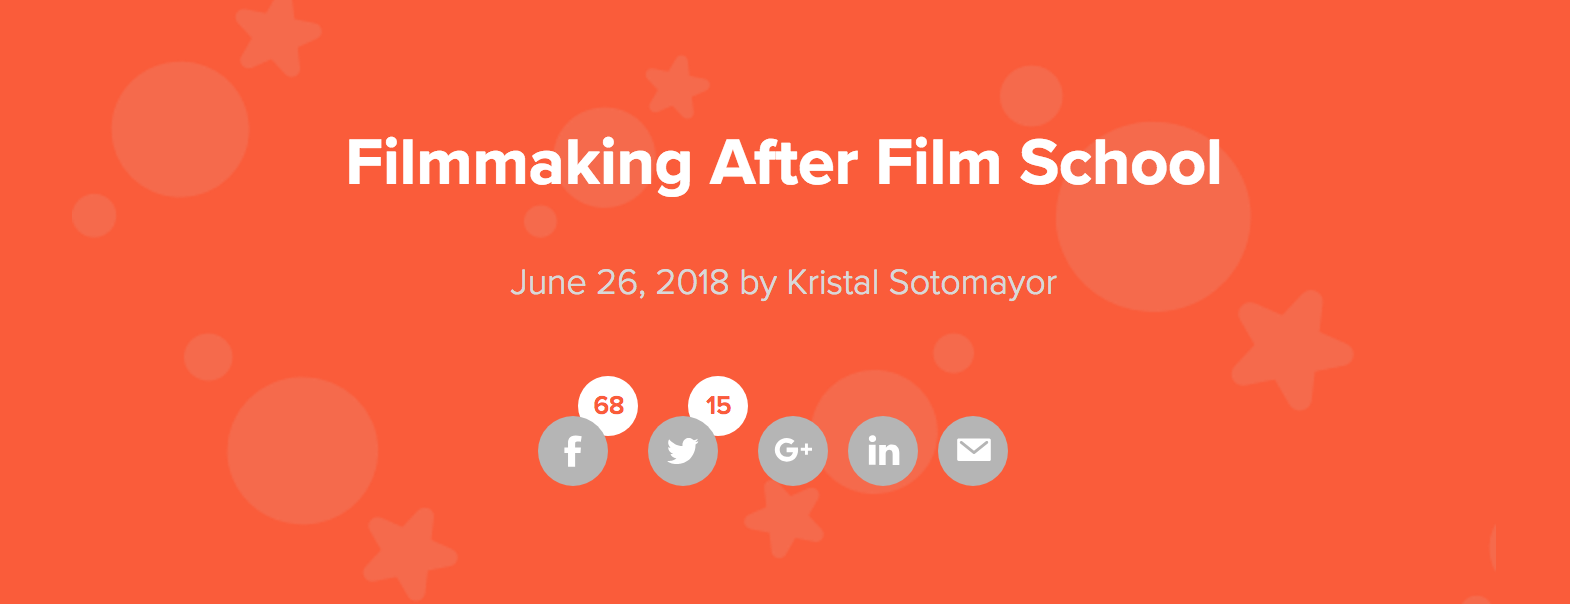 Submittable Article Filmmaking After Film School